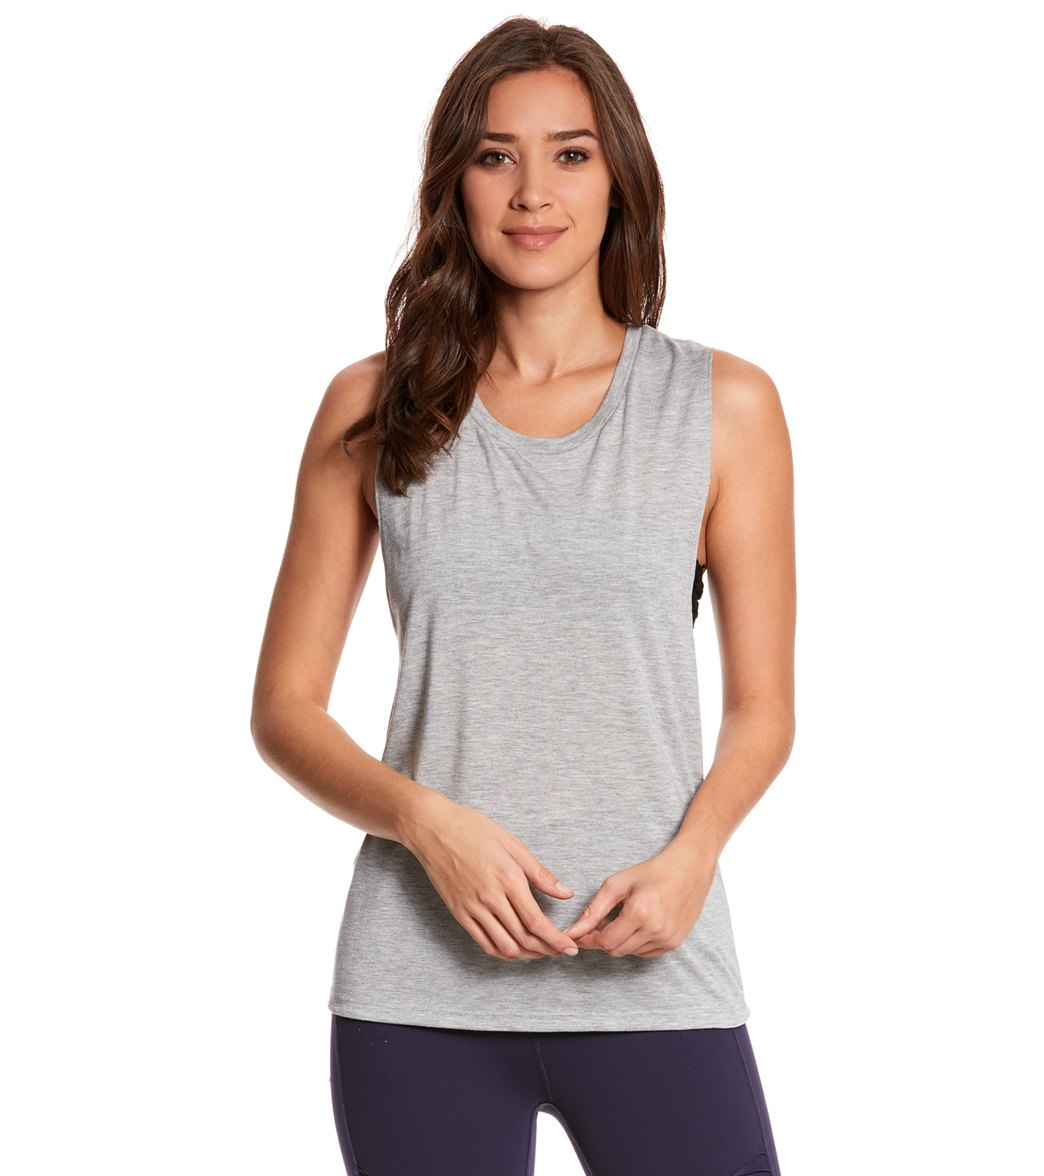 Bella + Canvas Women's Flowy Scoop Workout Muscle T-shirt - Athletic Heather - Small Cotton